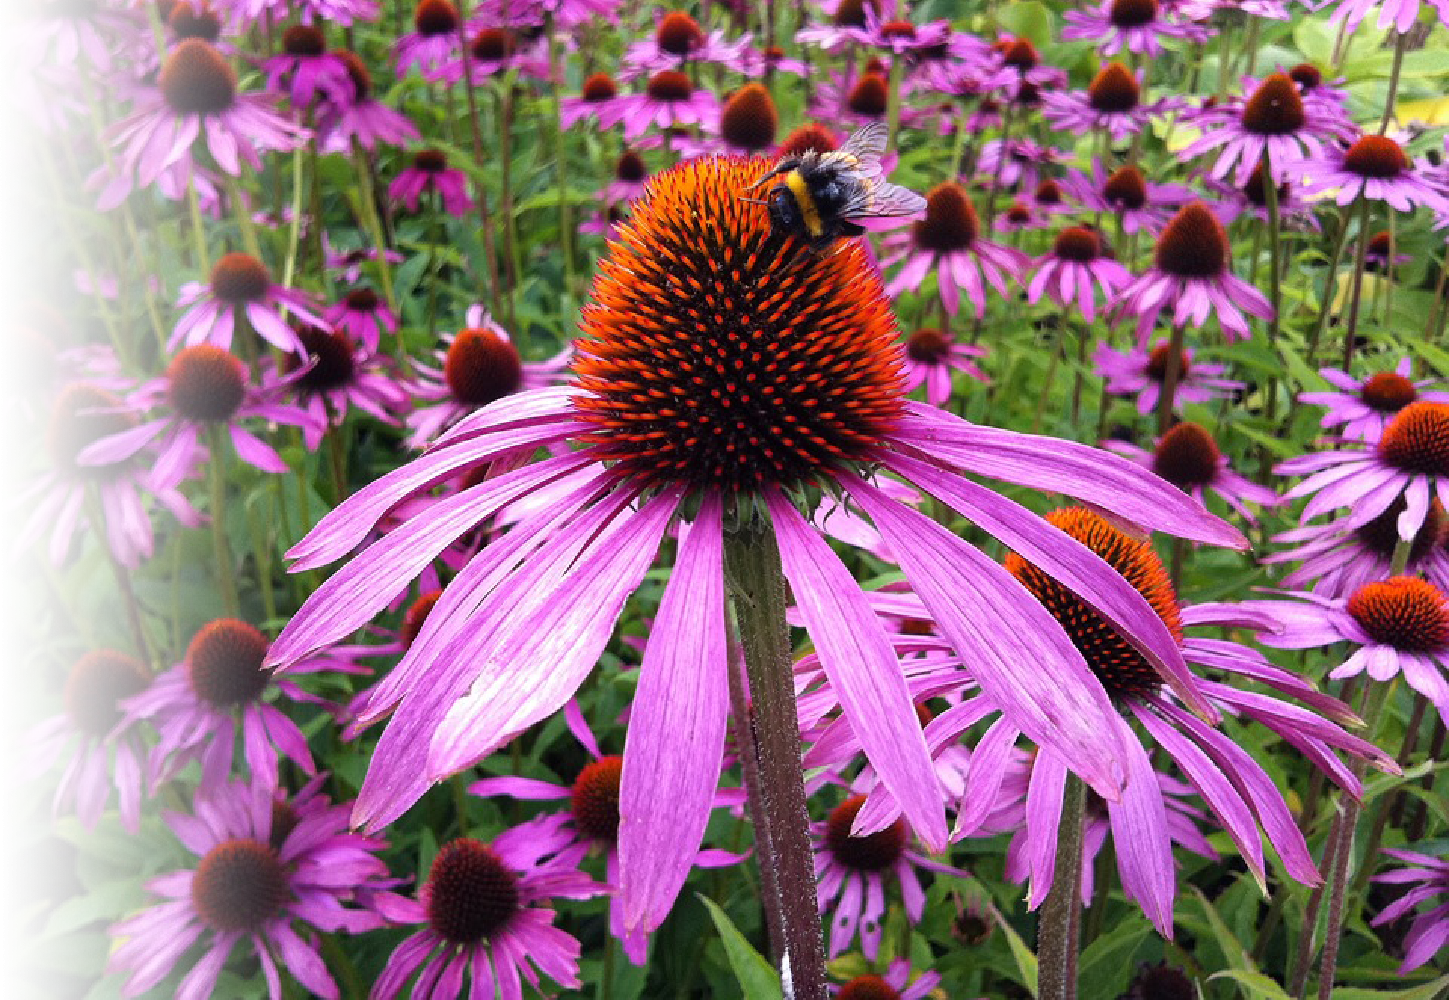 How Does Echinacea Work for Cold and Flu Symptoms?